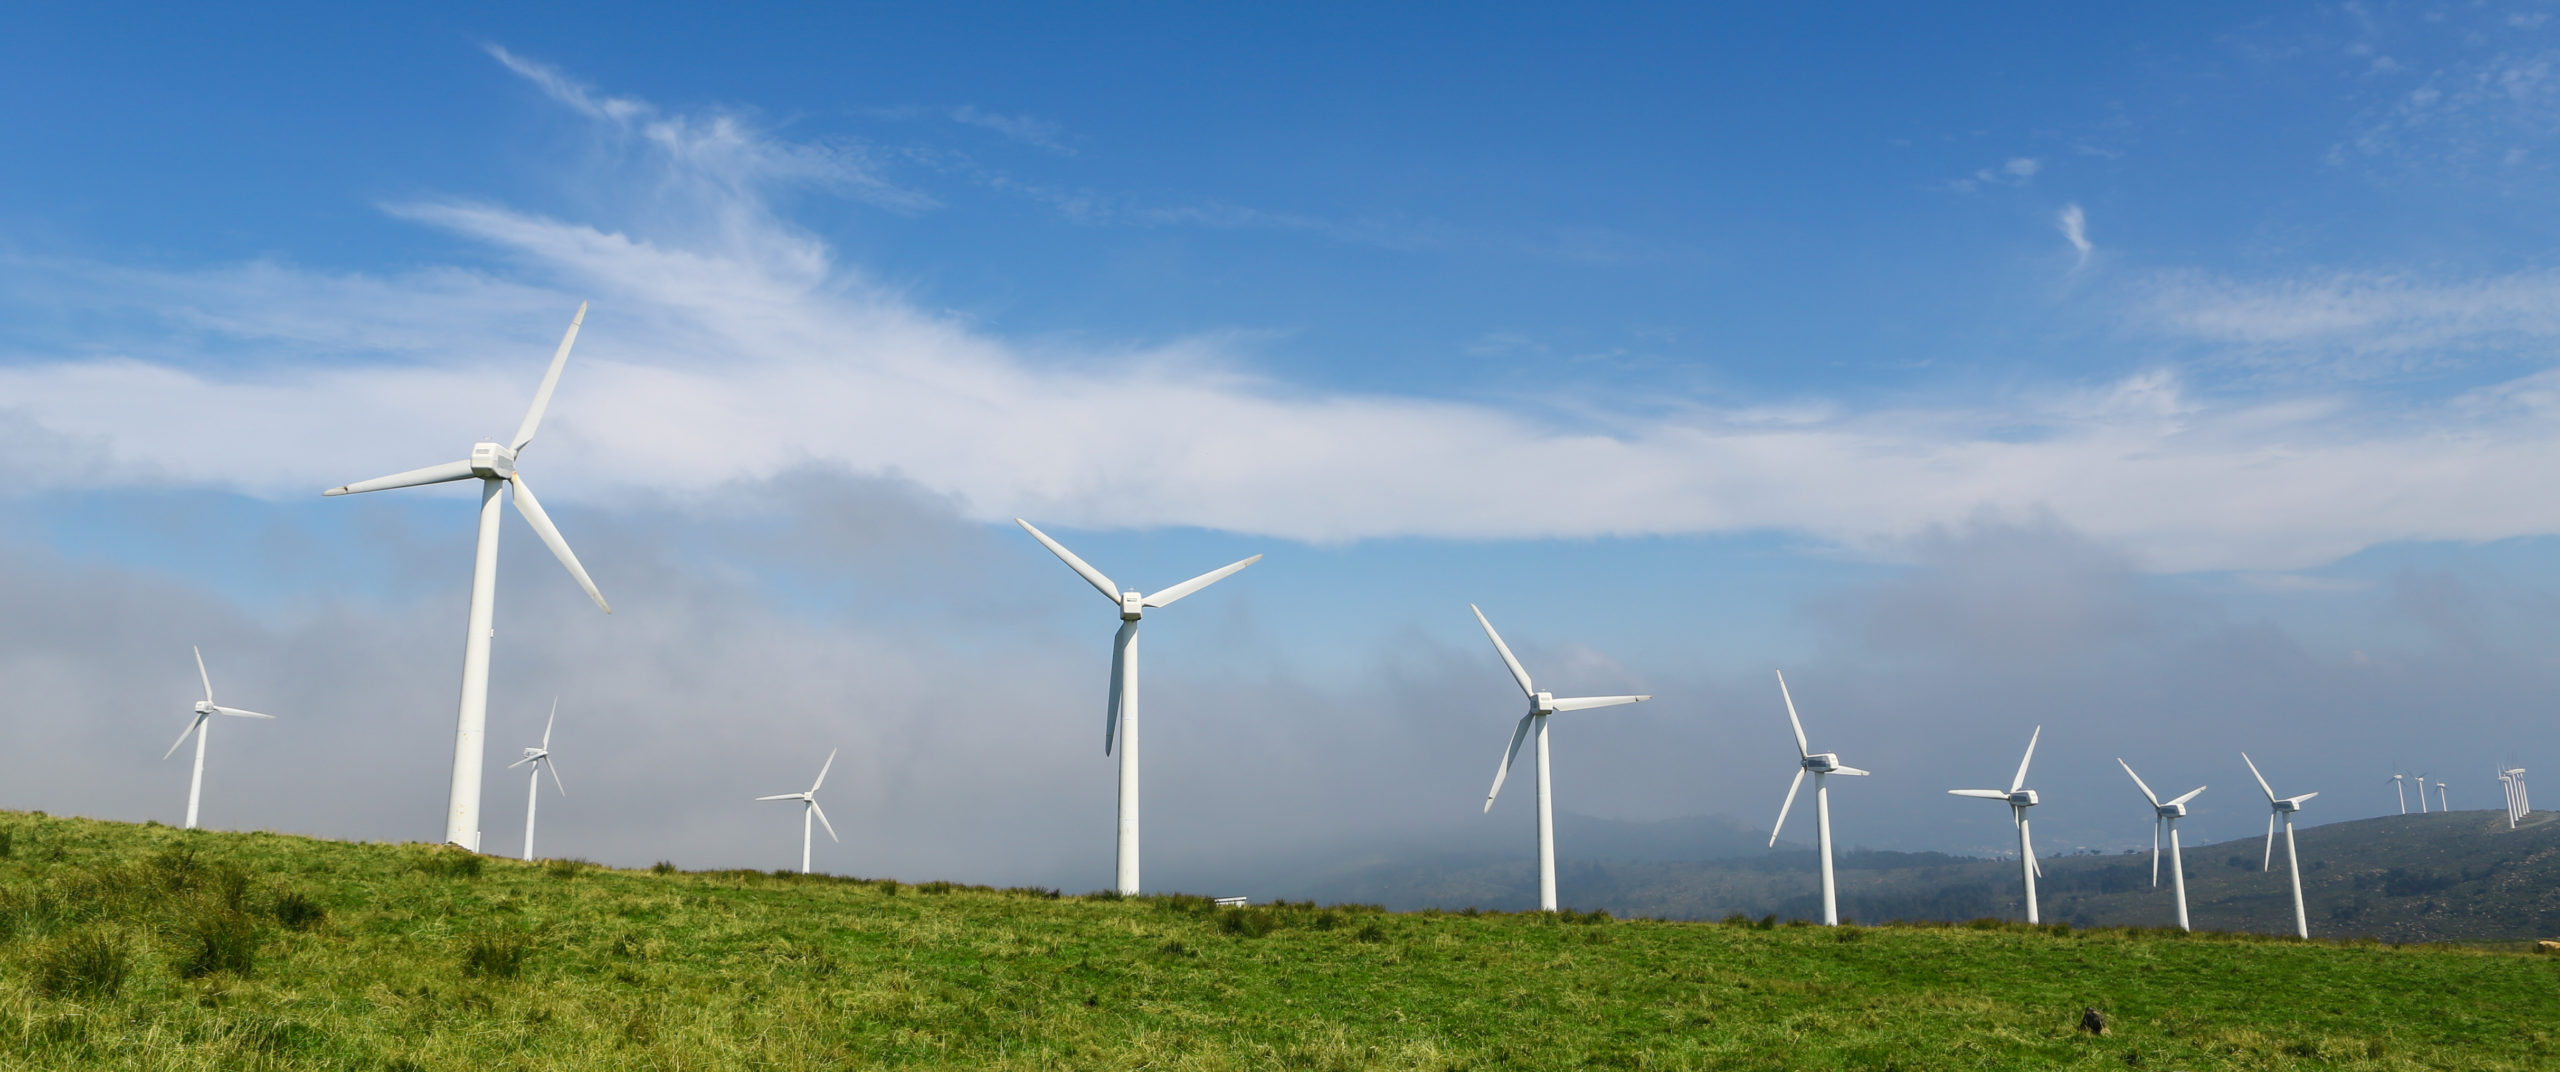 Onshore,Wind,Farm,In,The,Northern,Part,Of,Galicia,,Spain.